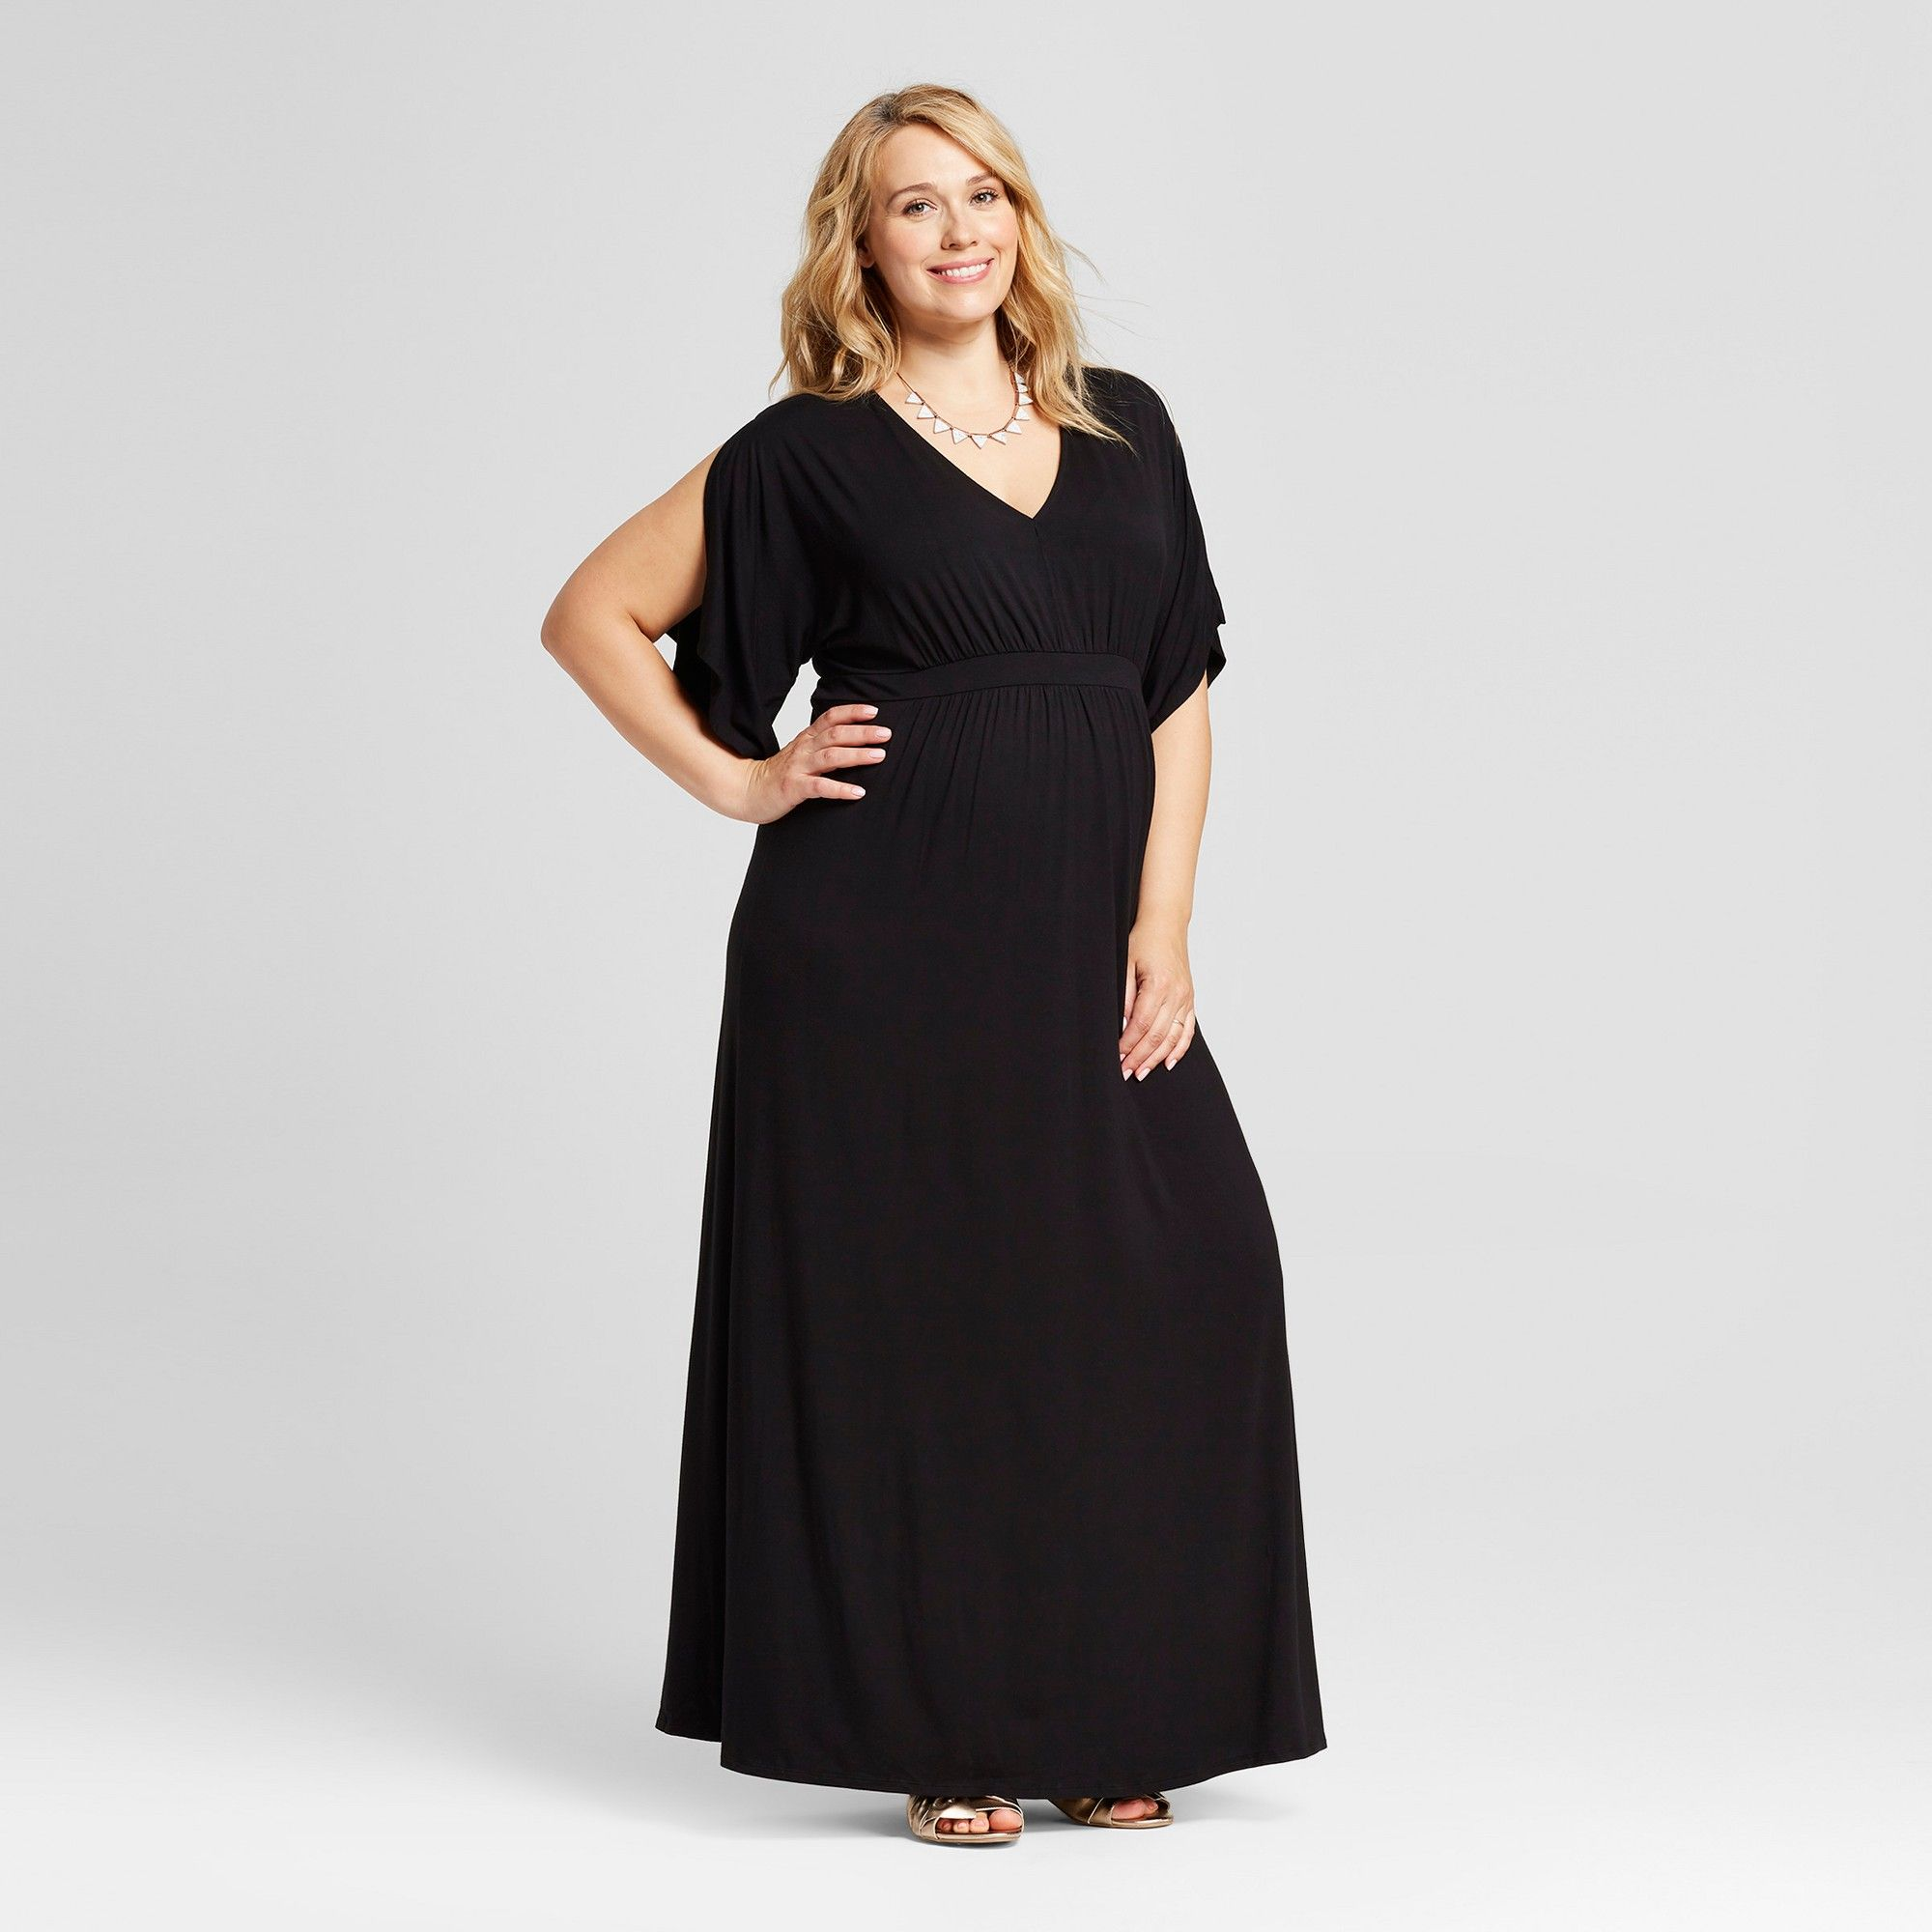 279dc312c492a Maternity Plus Size Kimono Sleeve Dress - Isabel Maternity by Ingrid &  Isabel Black 4X